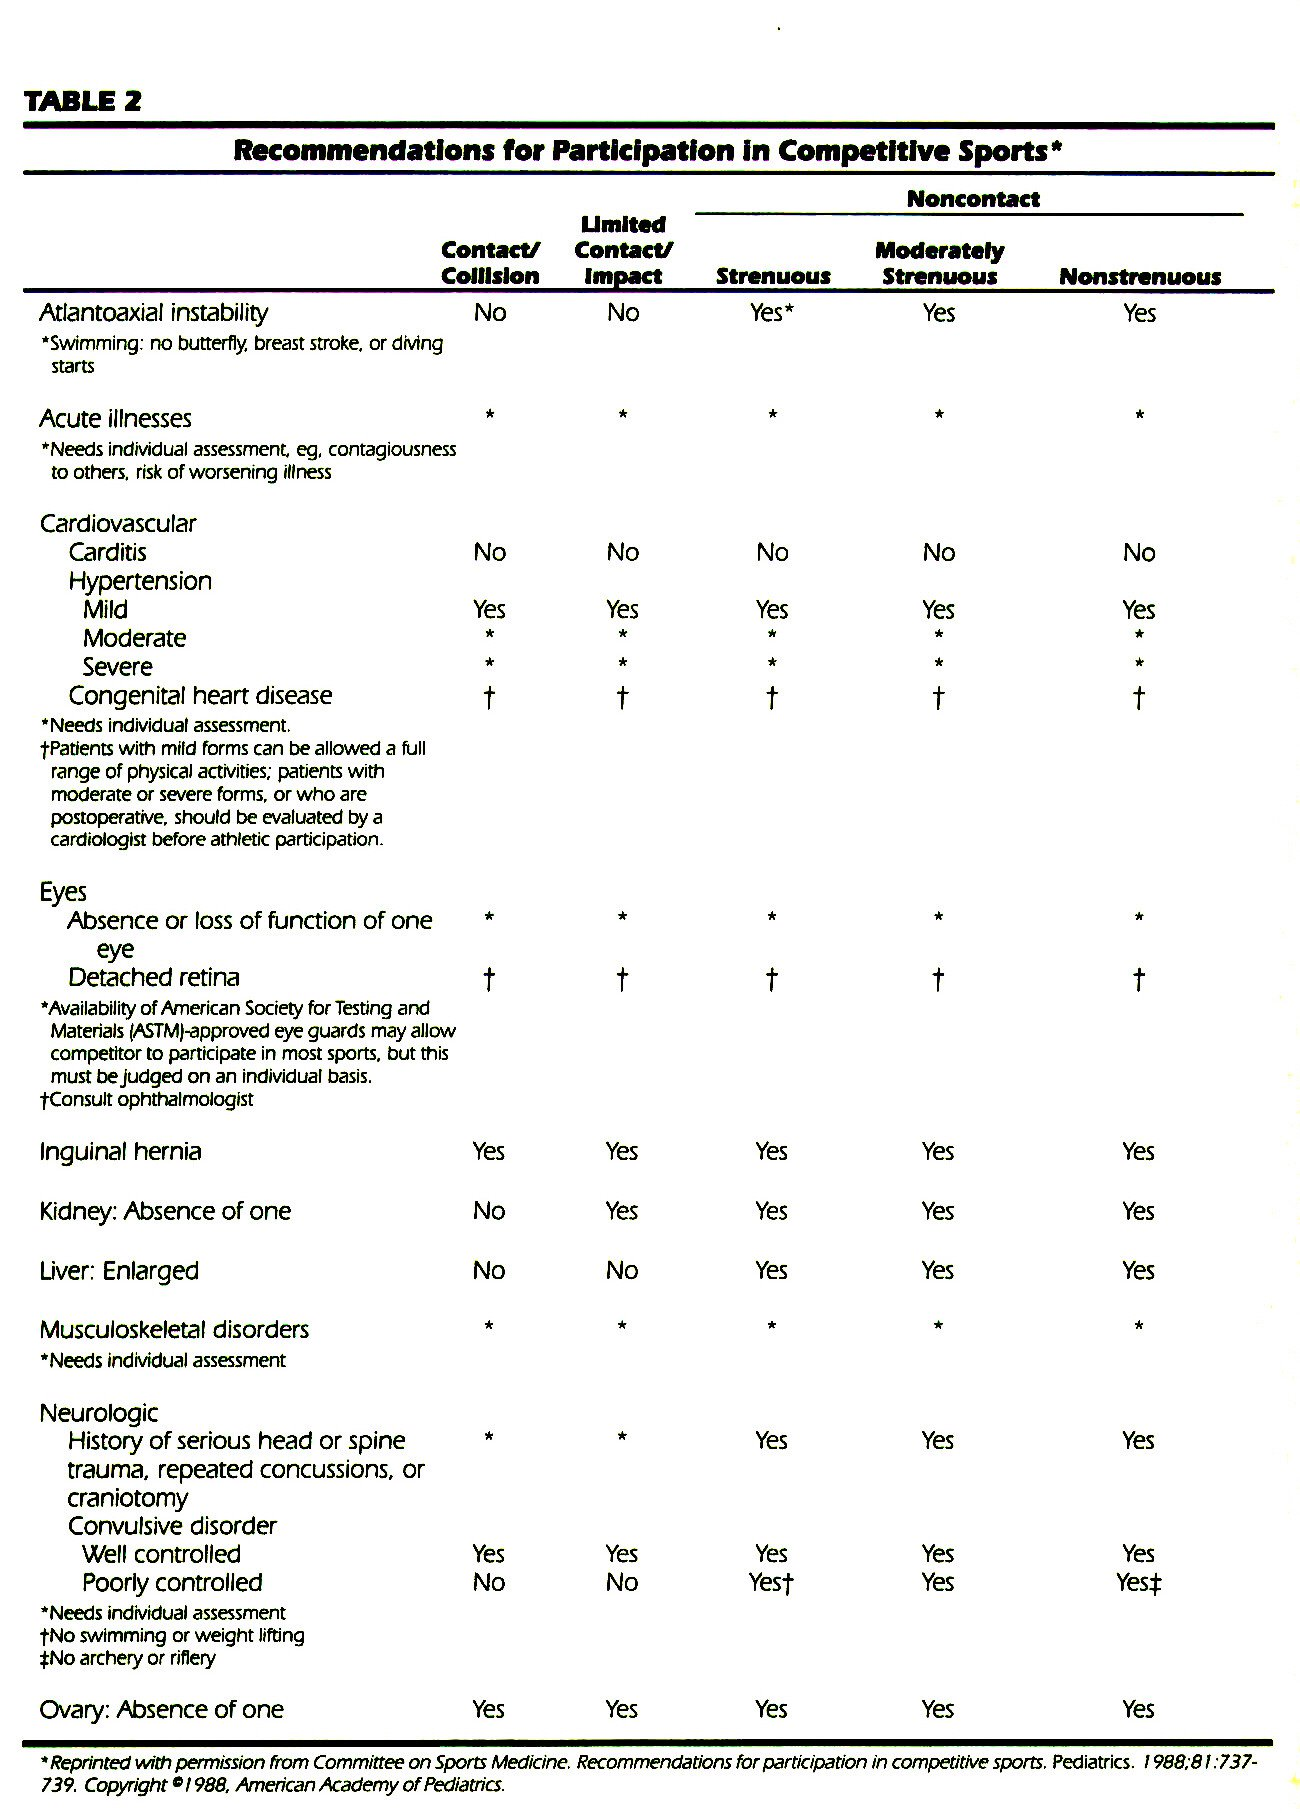 TABLE 2Recommendations for Participation In Competitive Sports'